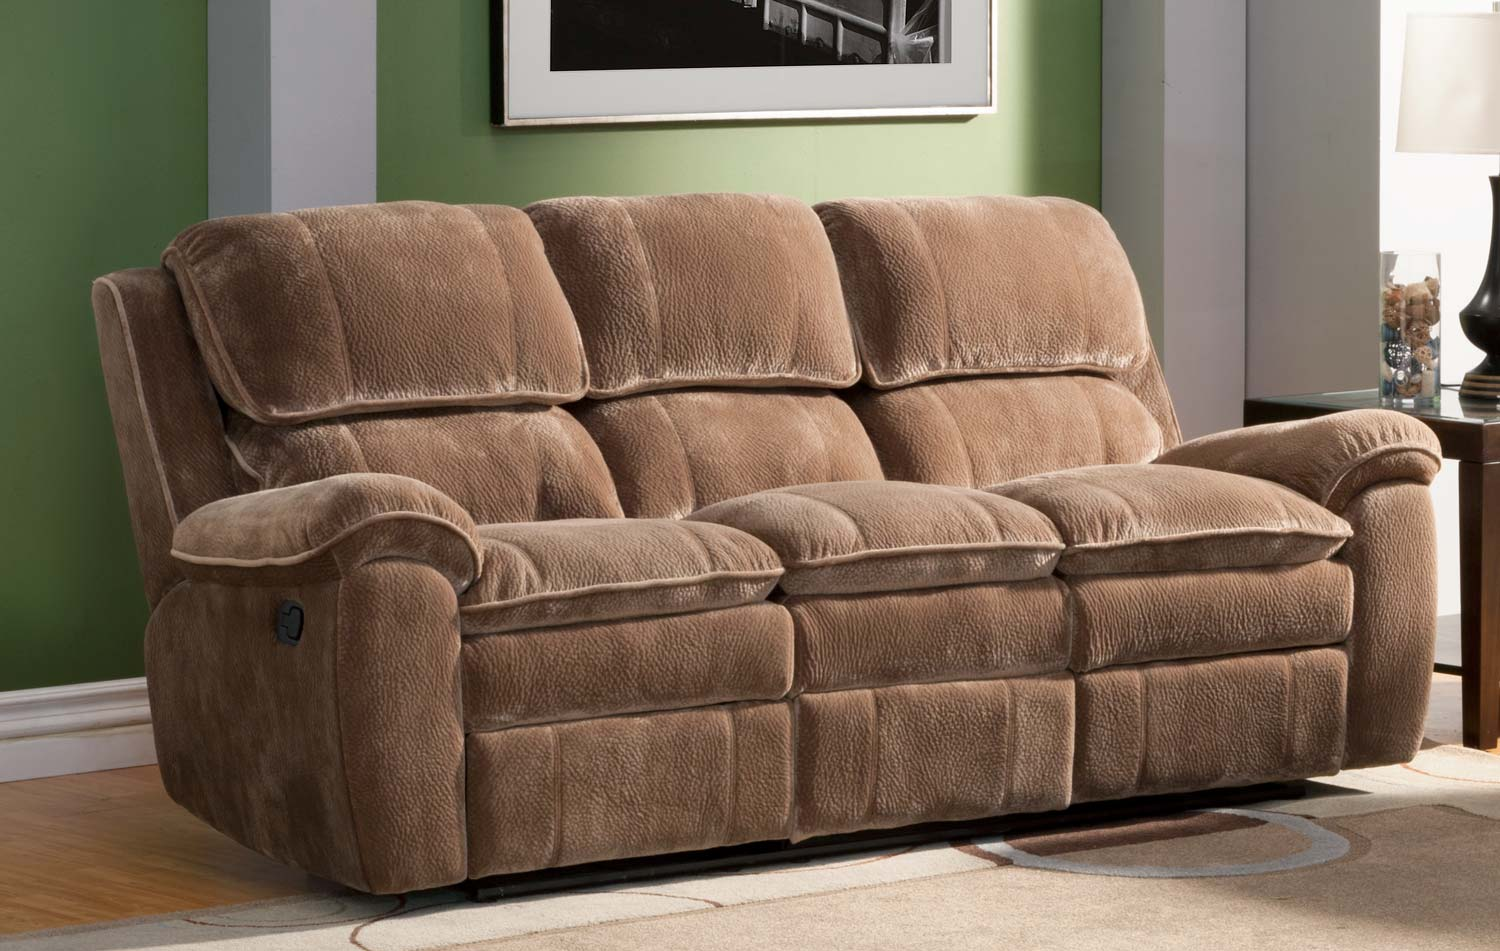 Homelegance reilly reclining sofa set brown textured plush microfiber u9766cp 3 at Brown microfiber couch and loveseat